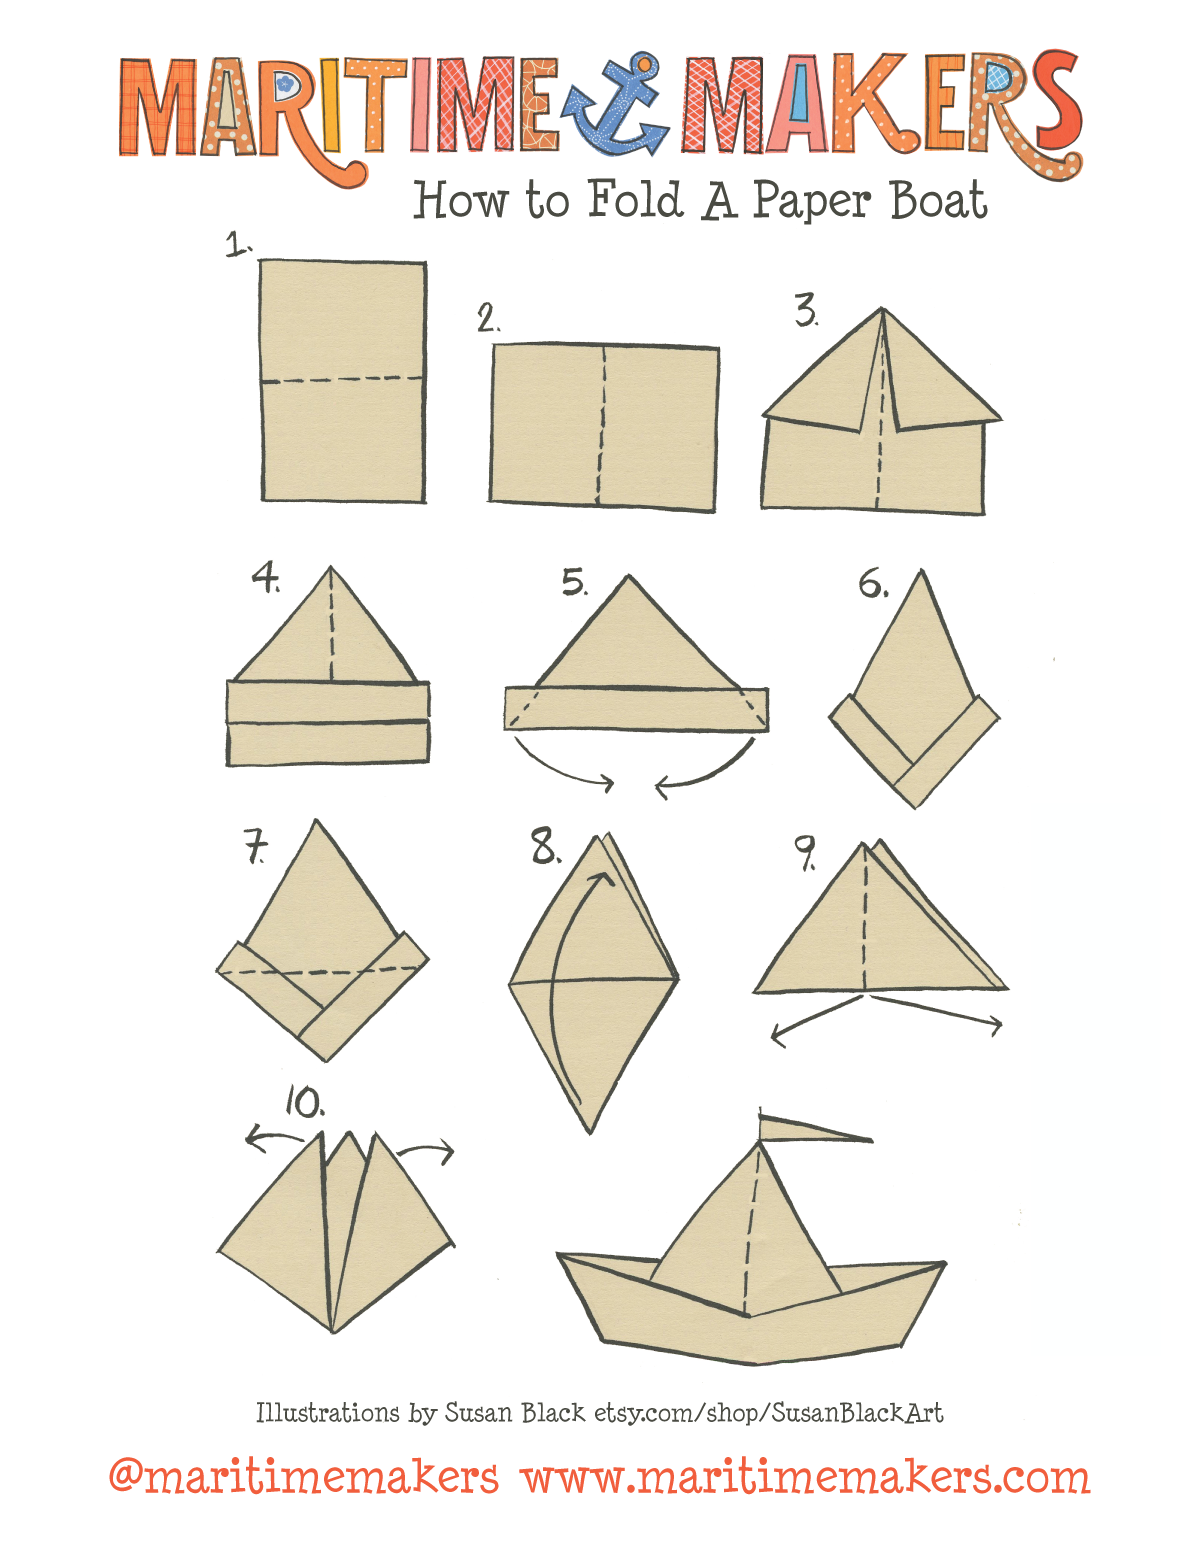 Maritime makers how to fold a paper boat printable instructions maritime makers how to fold a paper boat printable instructions by susan black design jeuxipadfo Image collections